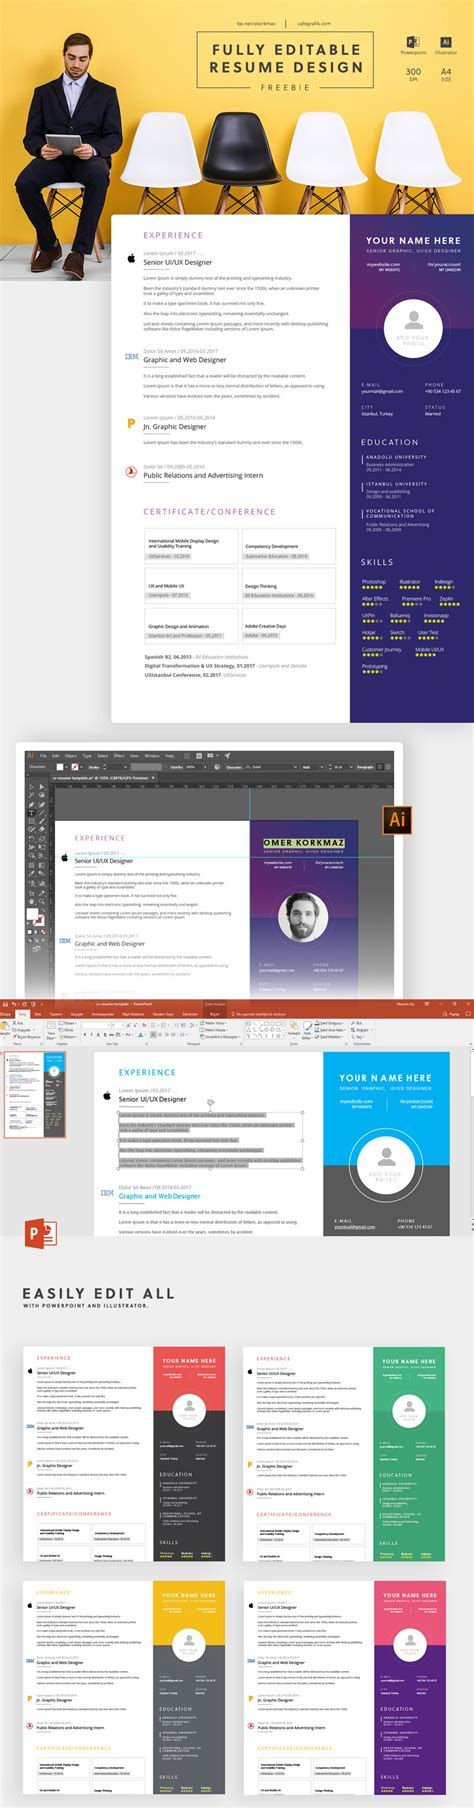 Adobe Illustrator Cv Template by Creative Resume Template Illustrator And Powerpoint